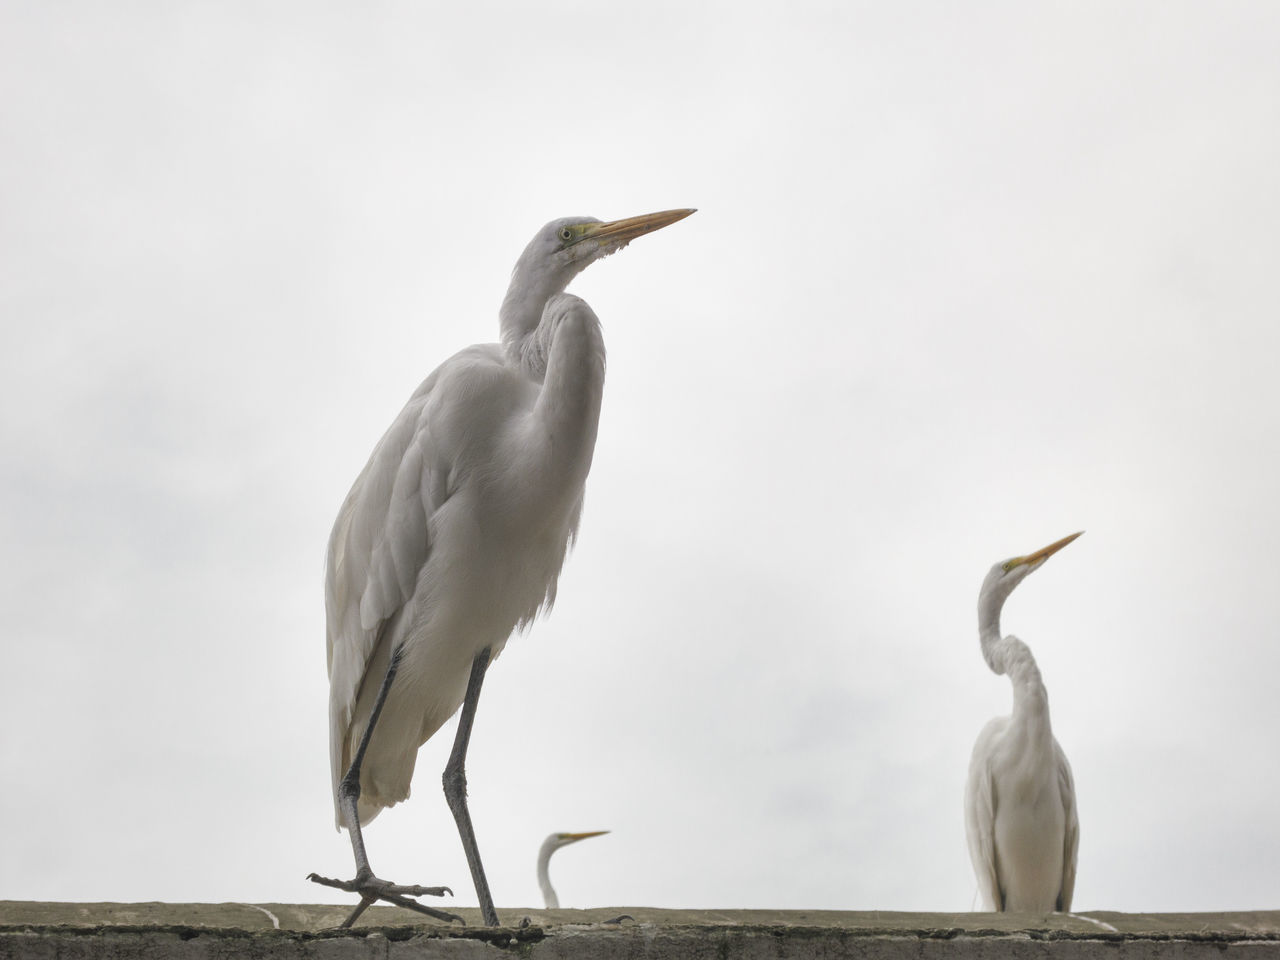 bird, animal themes, animals in the wild, two animals, animal wildlife, nature, day, full length, egret, great egret, outdoors, beak, water, no people, perching, beauty in nature, sky, close-up